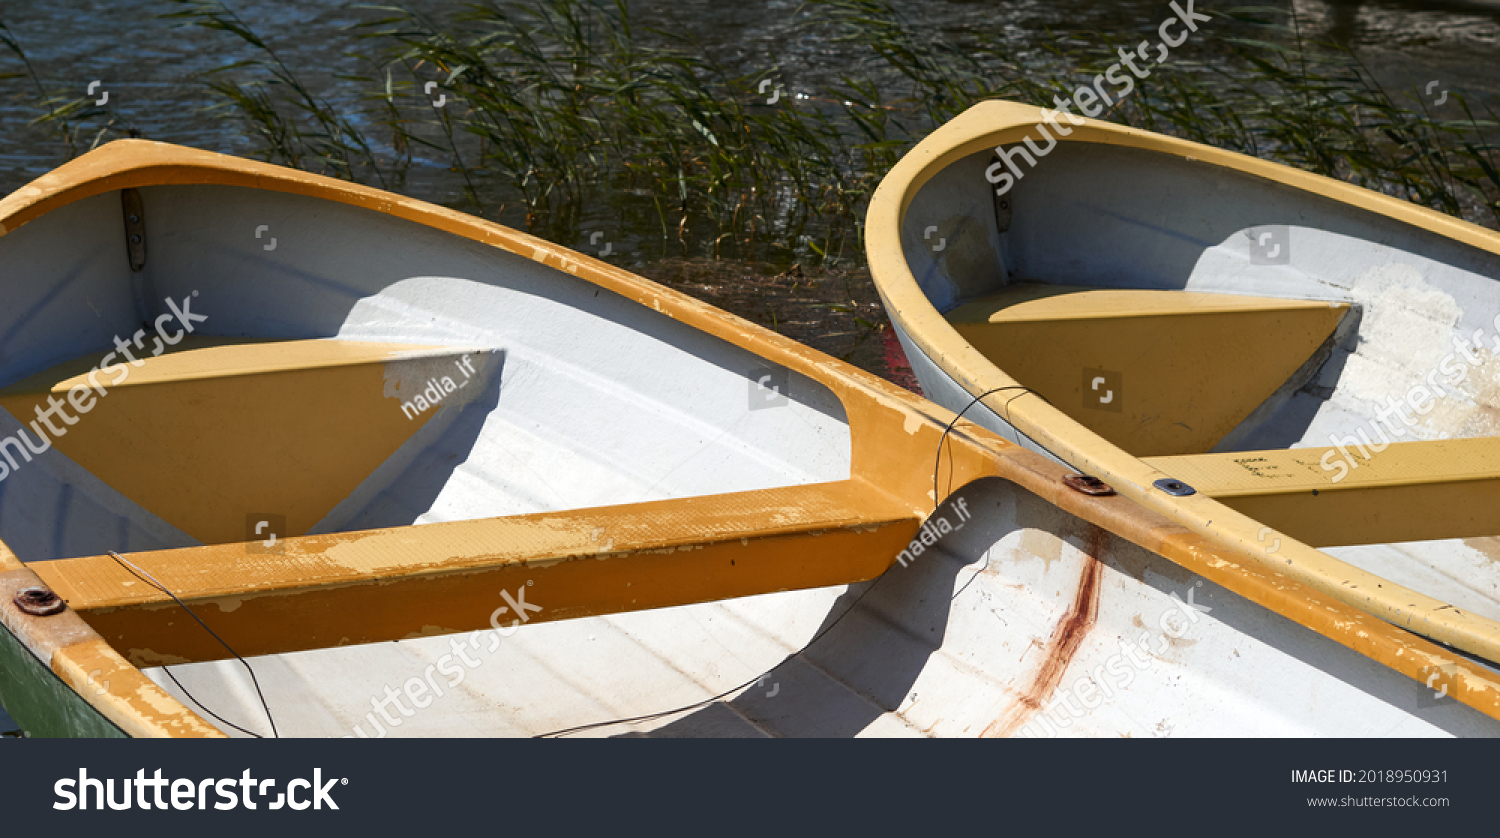 2 row boats side by side docked at a lake in summer. High quality photo #2018950931